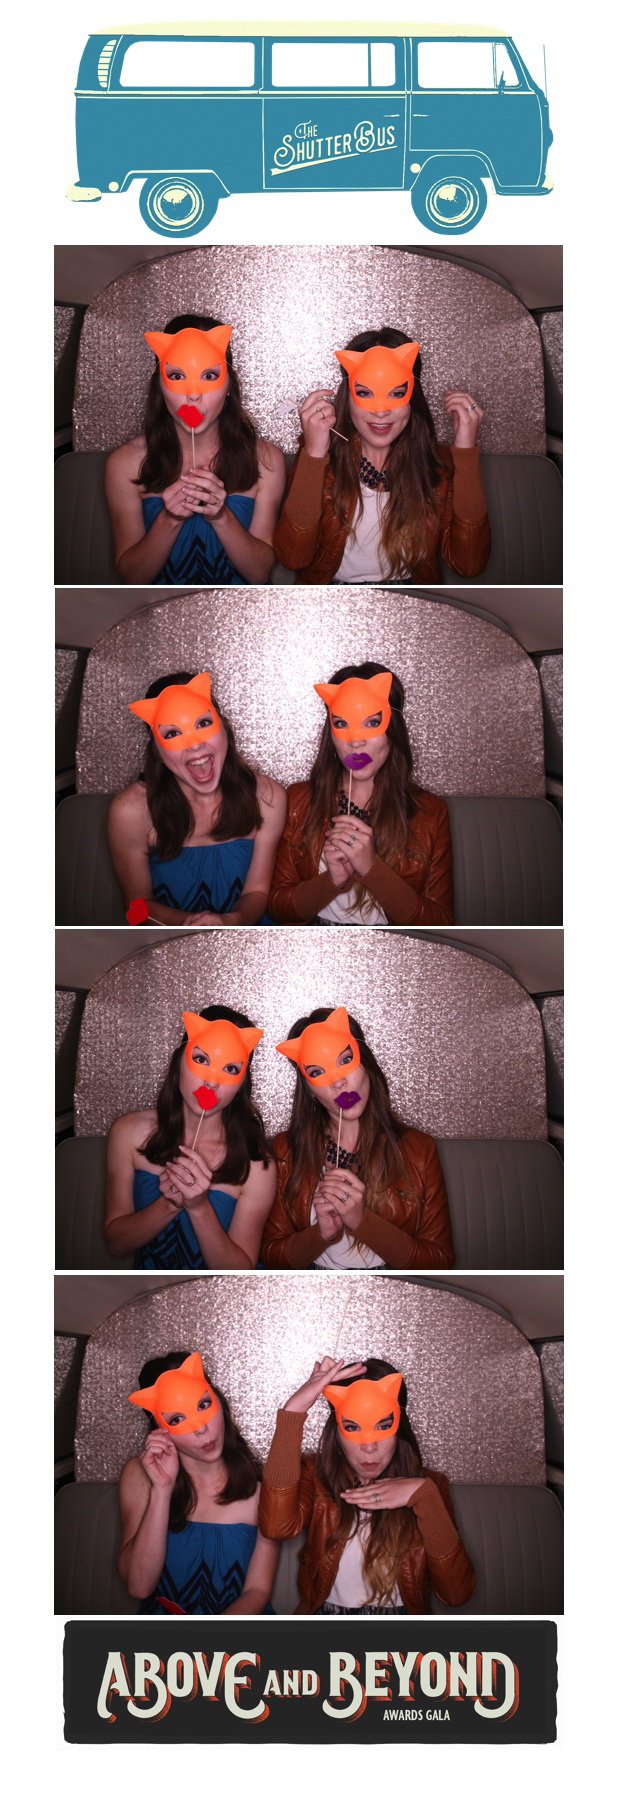 photo booth bentonville arkansas